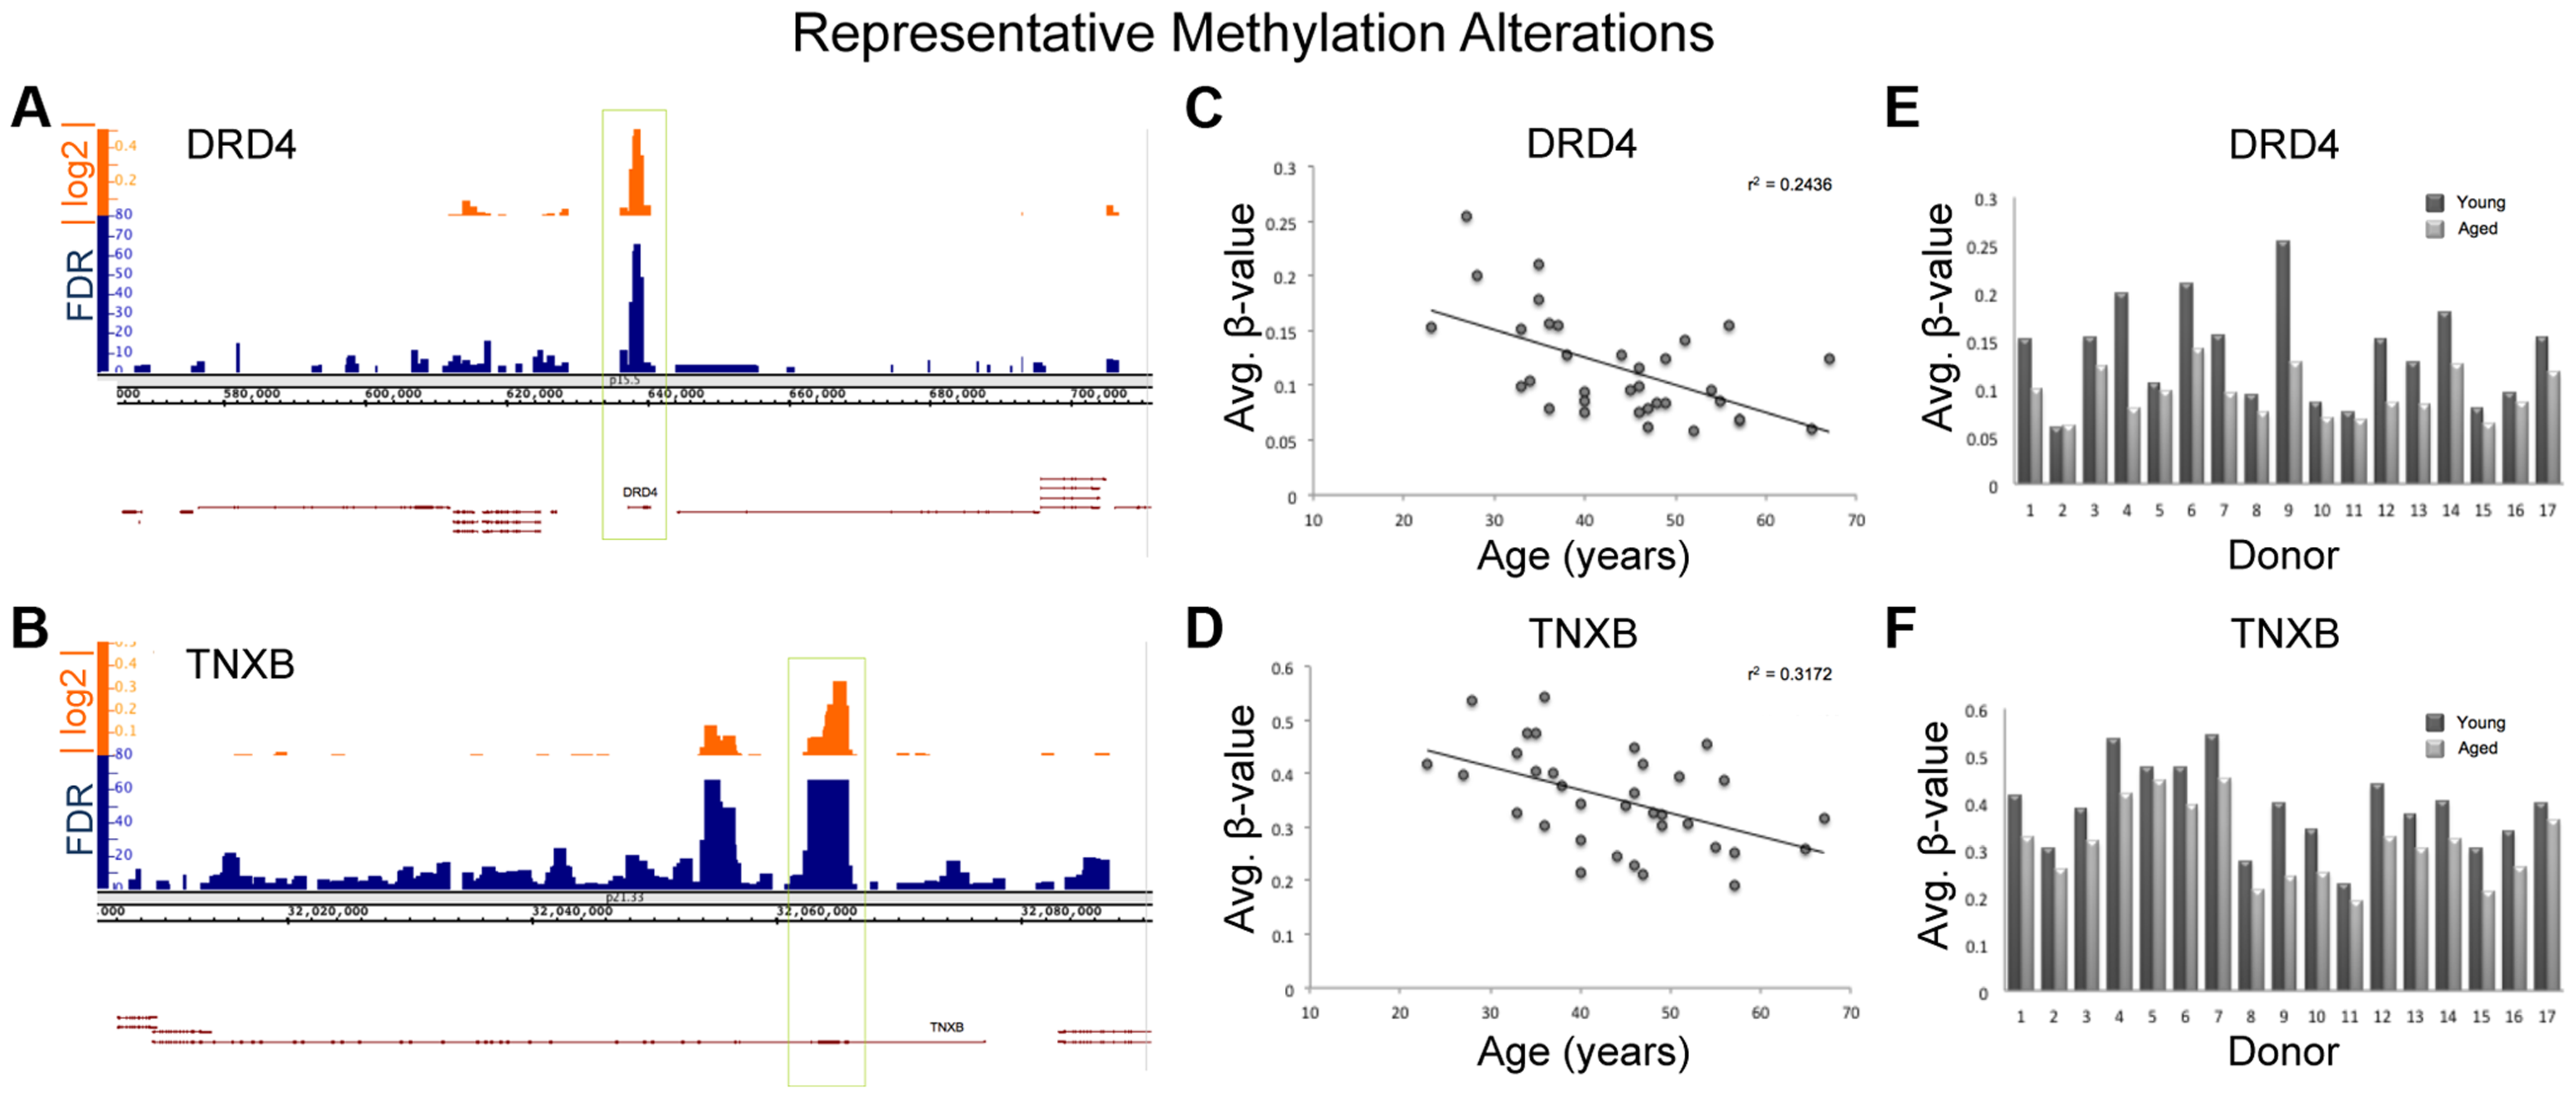 Various descriptive statistics are presented for both TNXB and DRD4; 2 regions of representative methylation alterations.